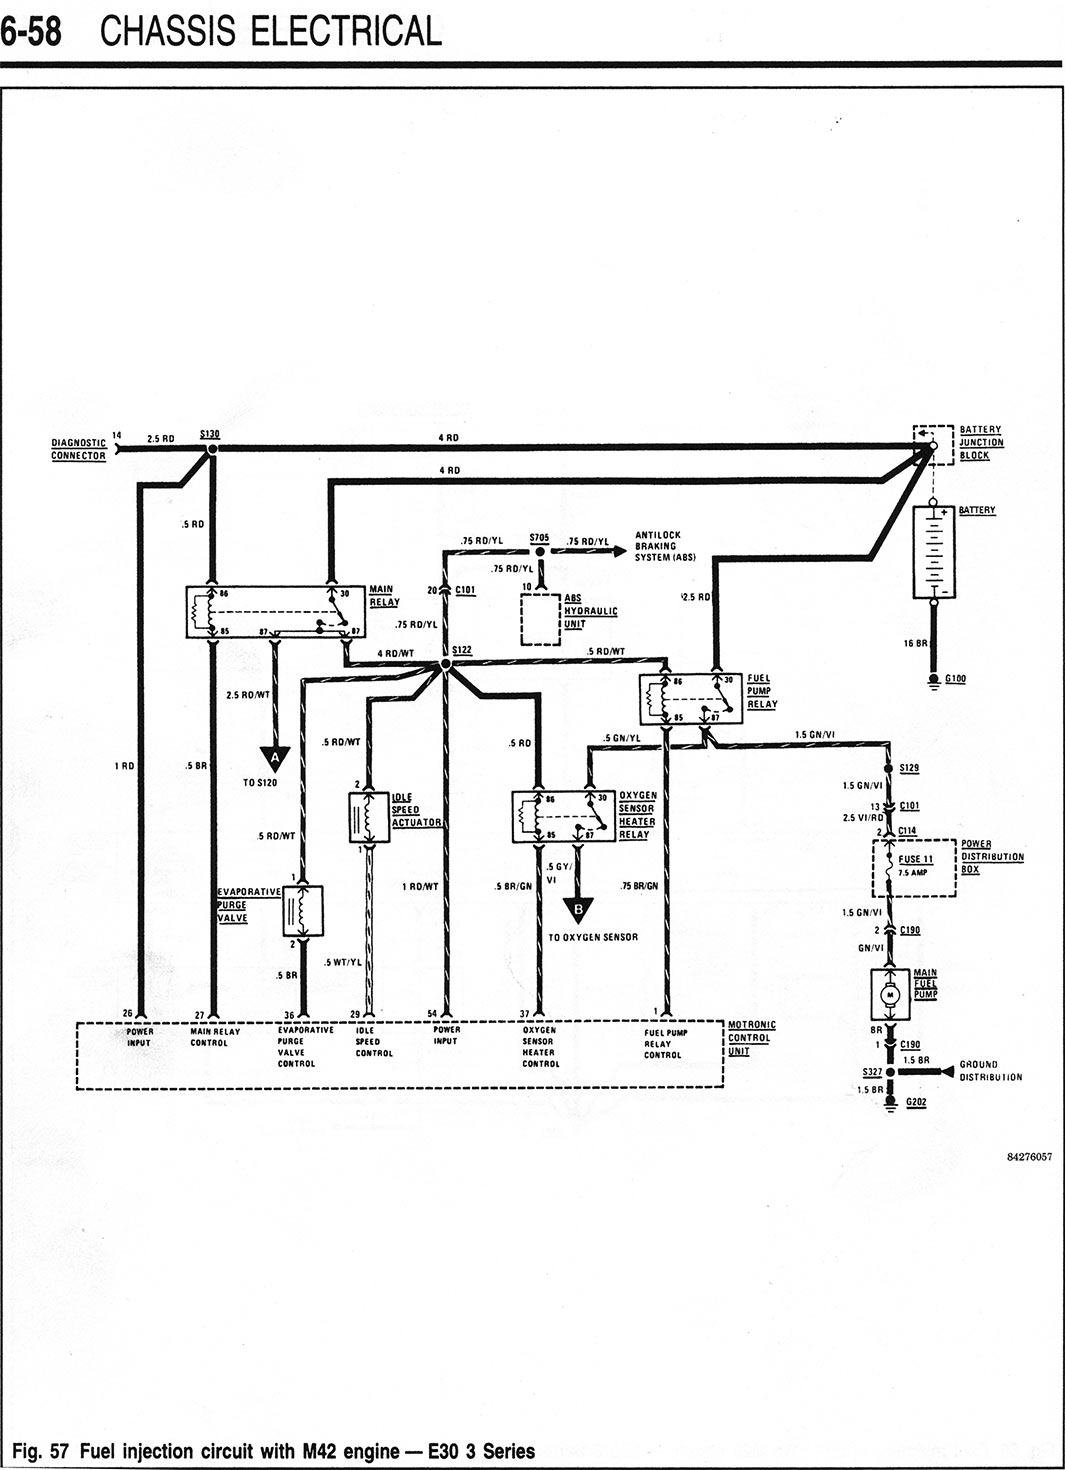 PG658 e30 wiring diagram e30 amplifier wiring diagram \u2022 wiring diagrams BMW E46 M3 Black at webbmarketing.co